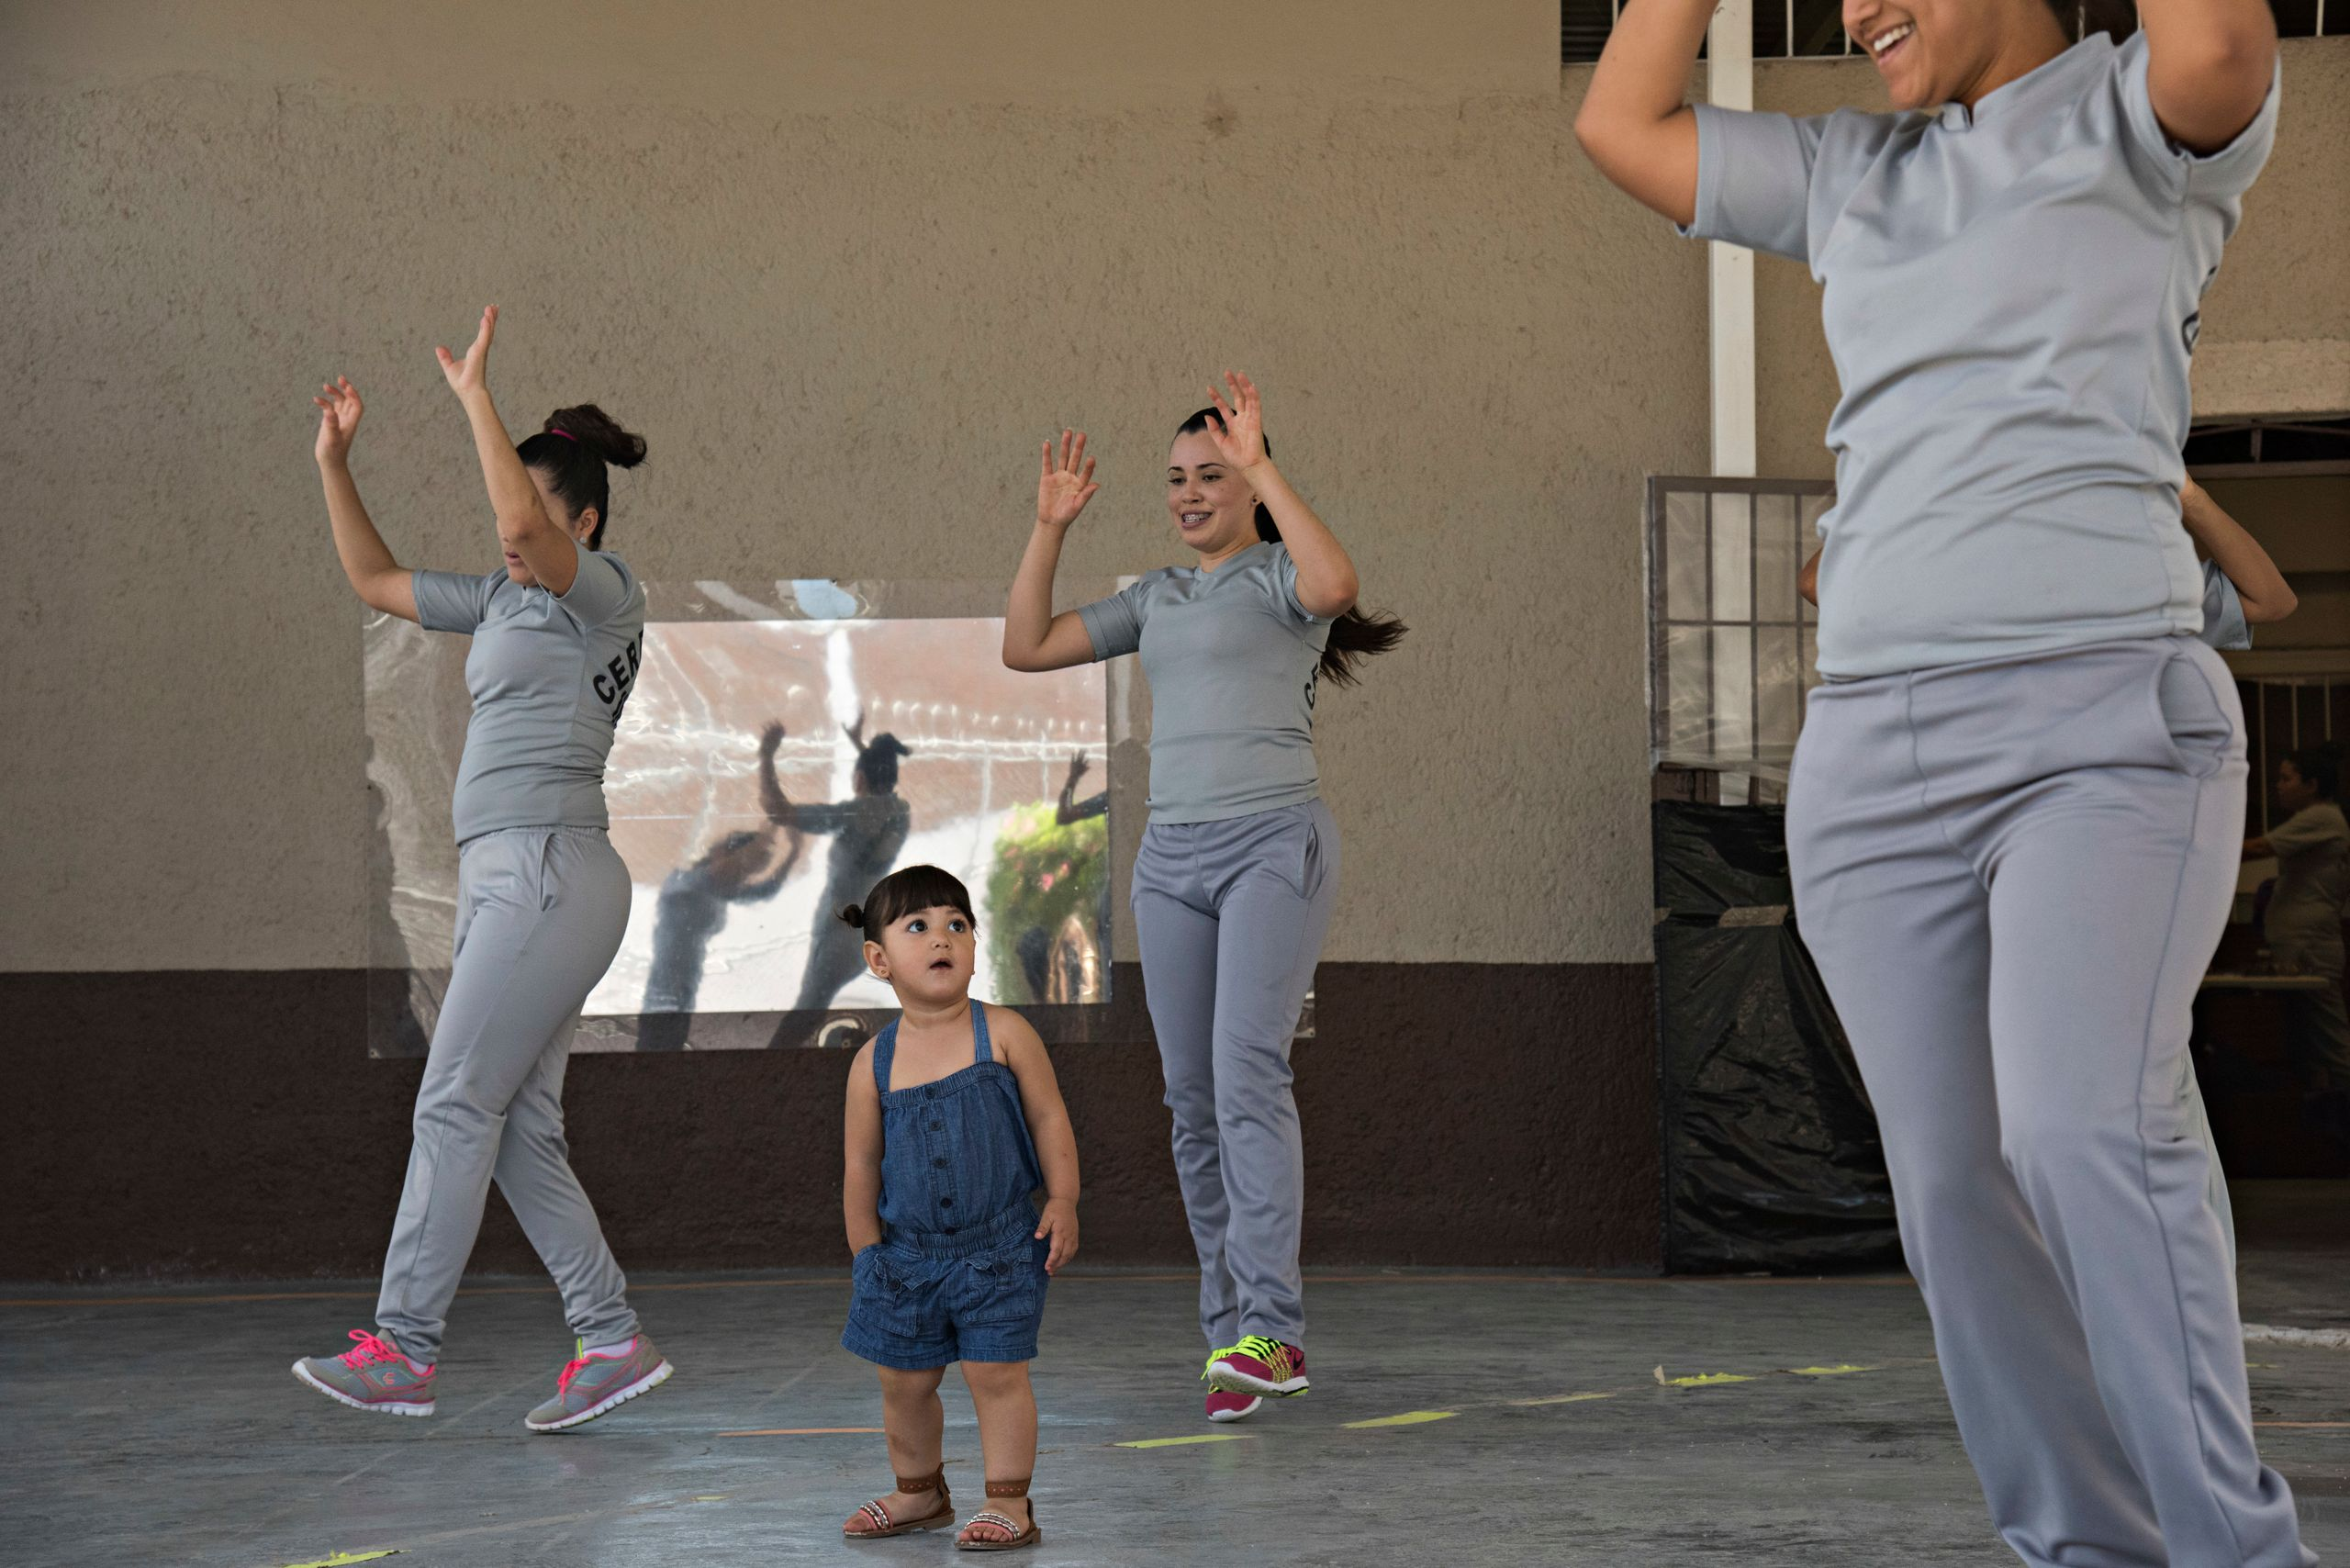 Melissa wanders through a room of dancing women during a morning Zumba class in the women's prison. Authorities arrested her